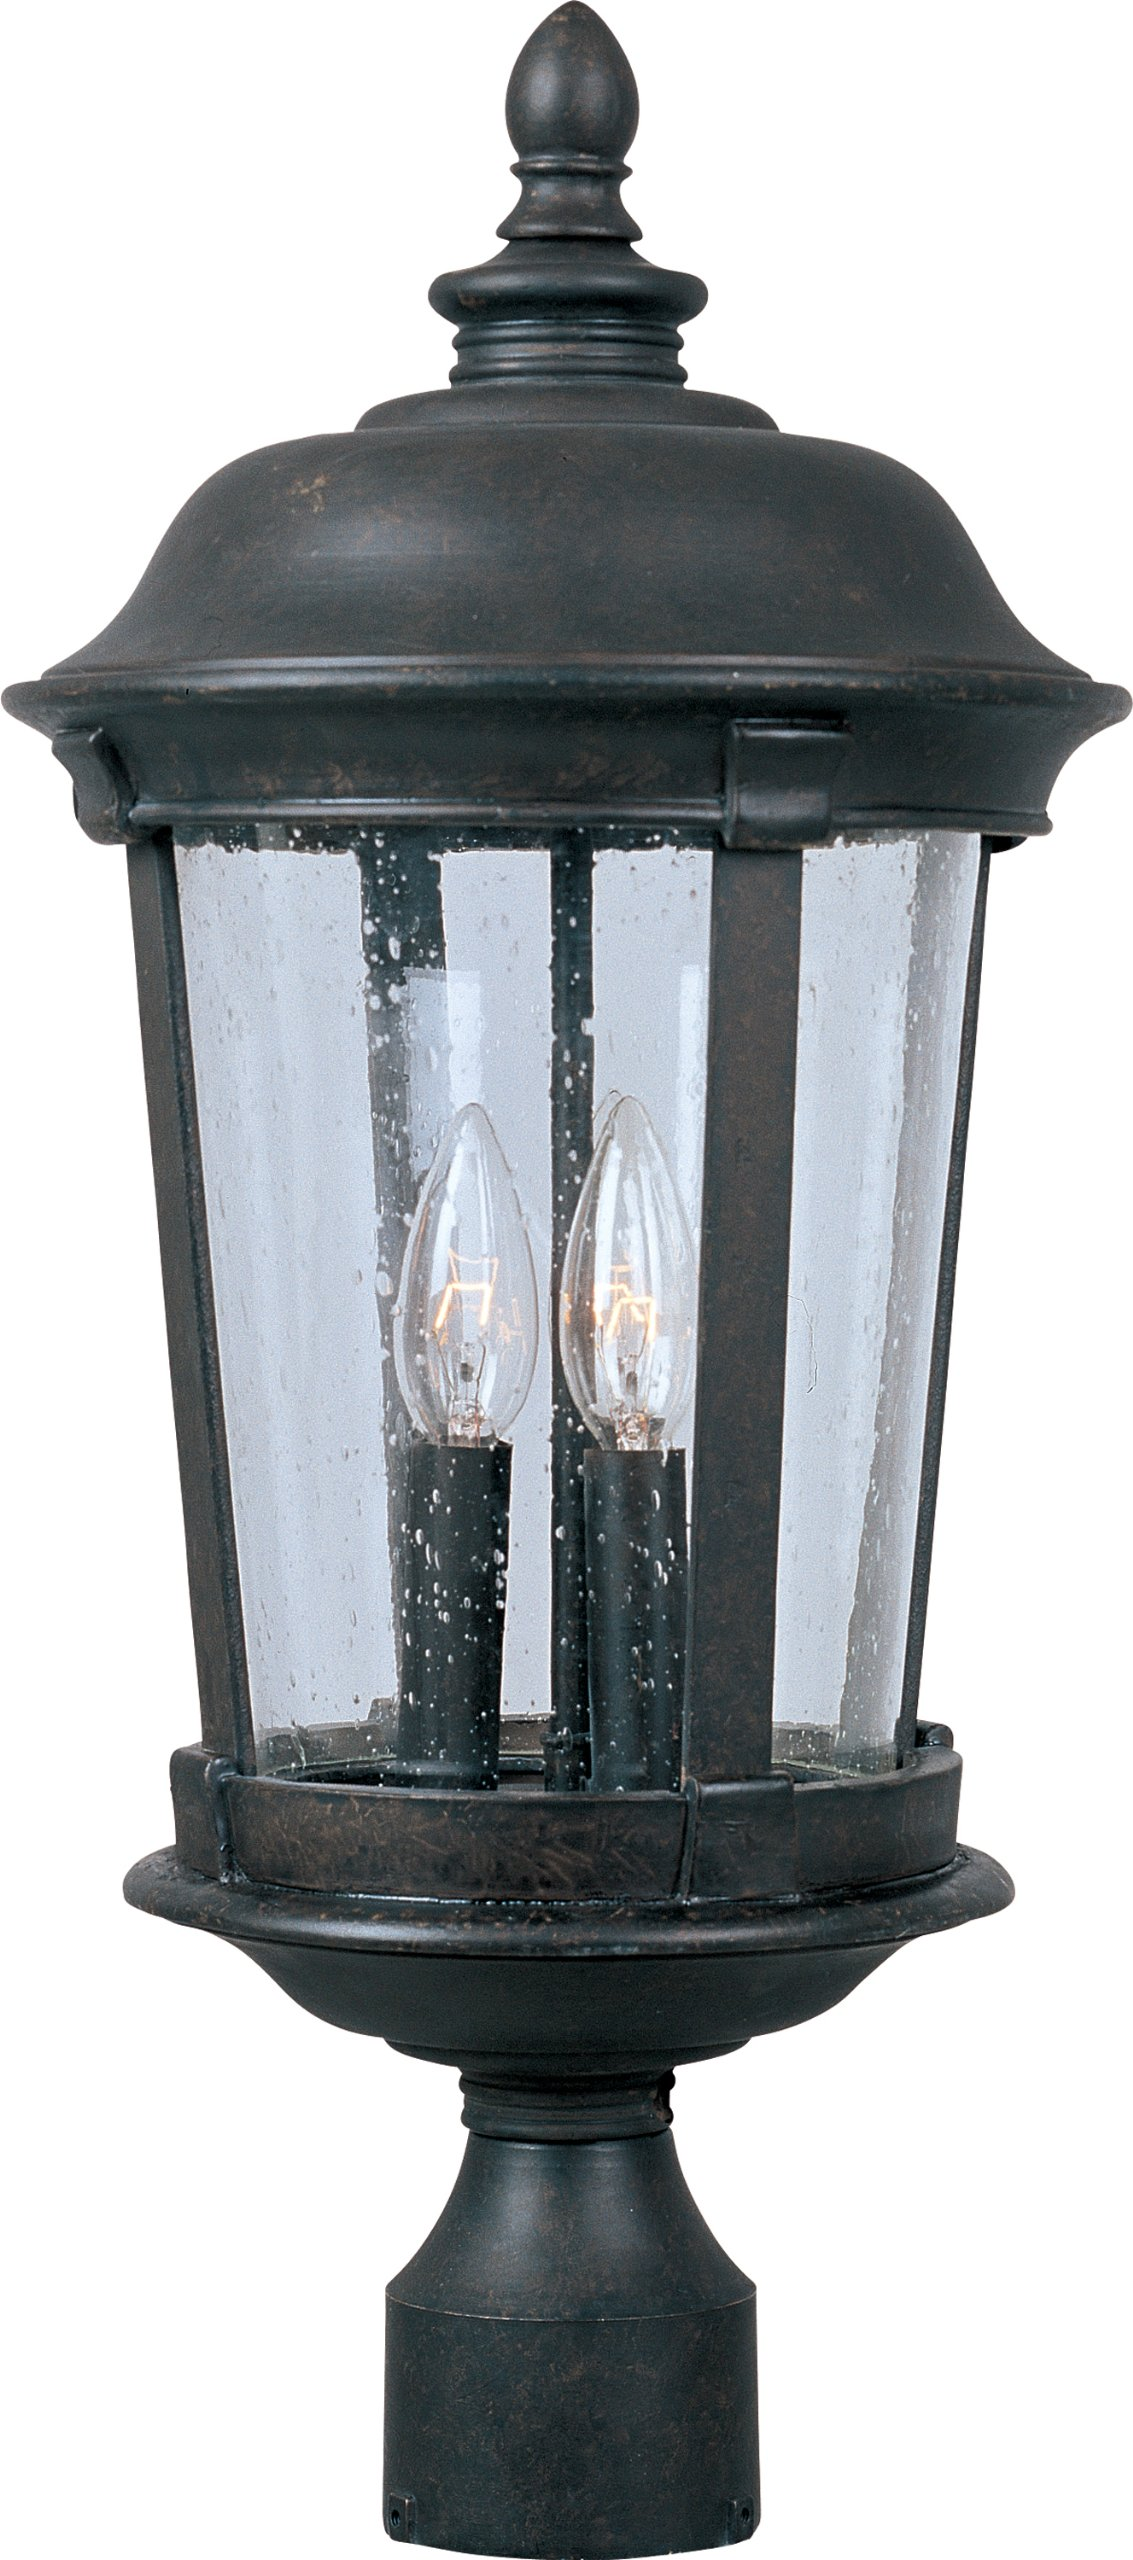 Maxim 40091CDBZ Dover VX 3-Light Outdoor Pole/Post Lantern, Bronze Finish, Seedy Glass, CA Incandescent Incandescent Bulb , 40W Max., Dry Safety Rating, Fabric Shade Material, Rated Lumens